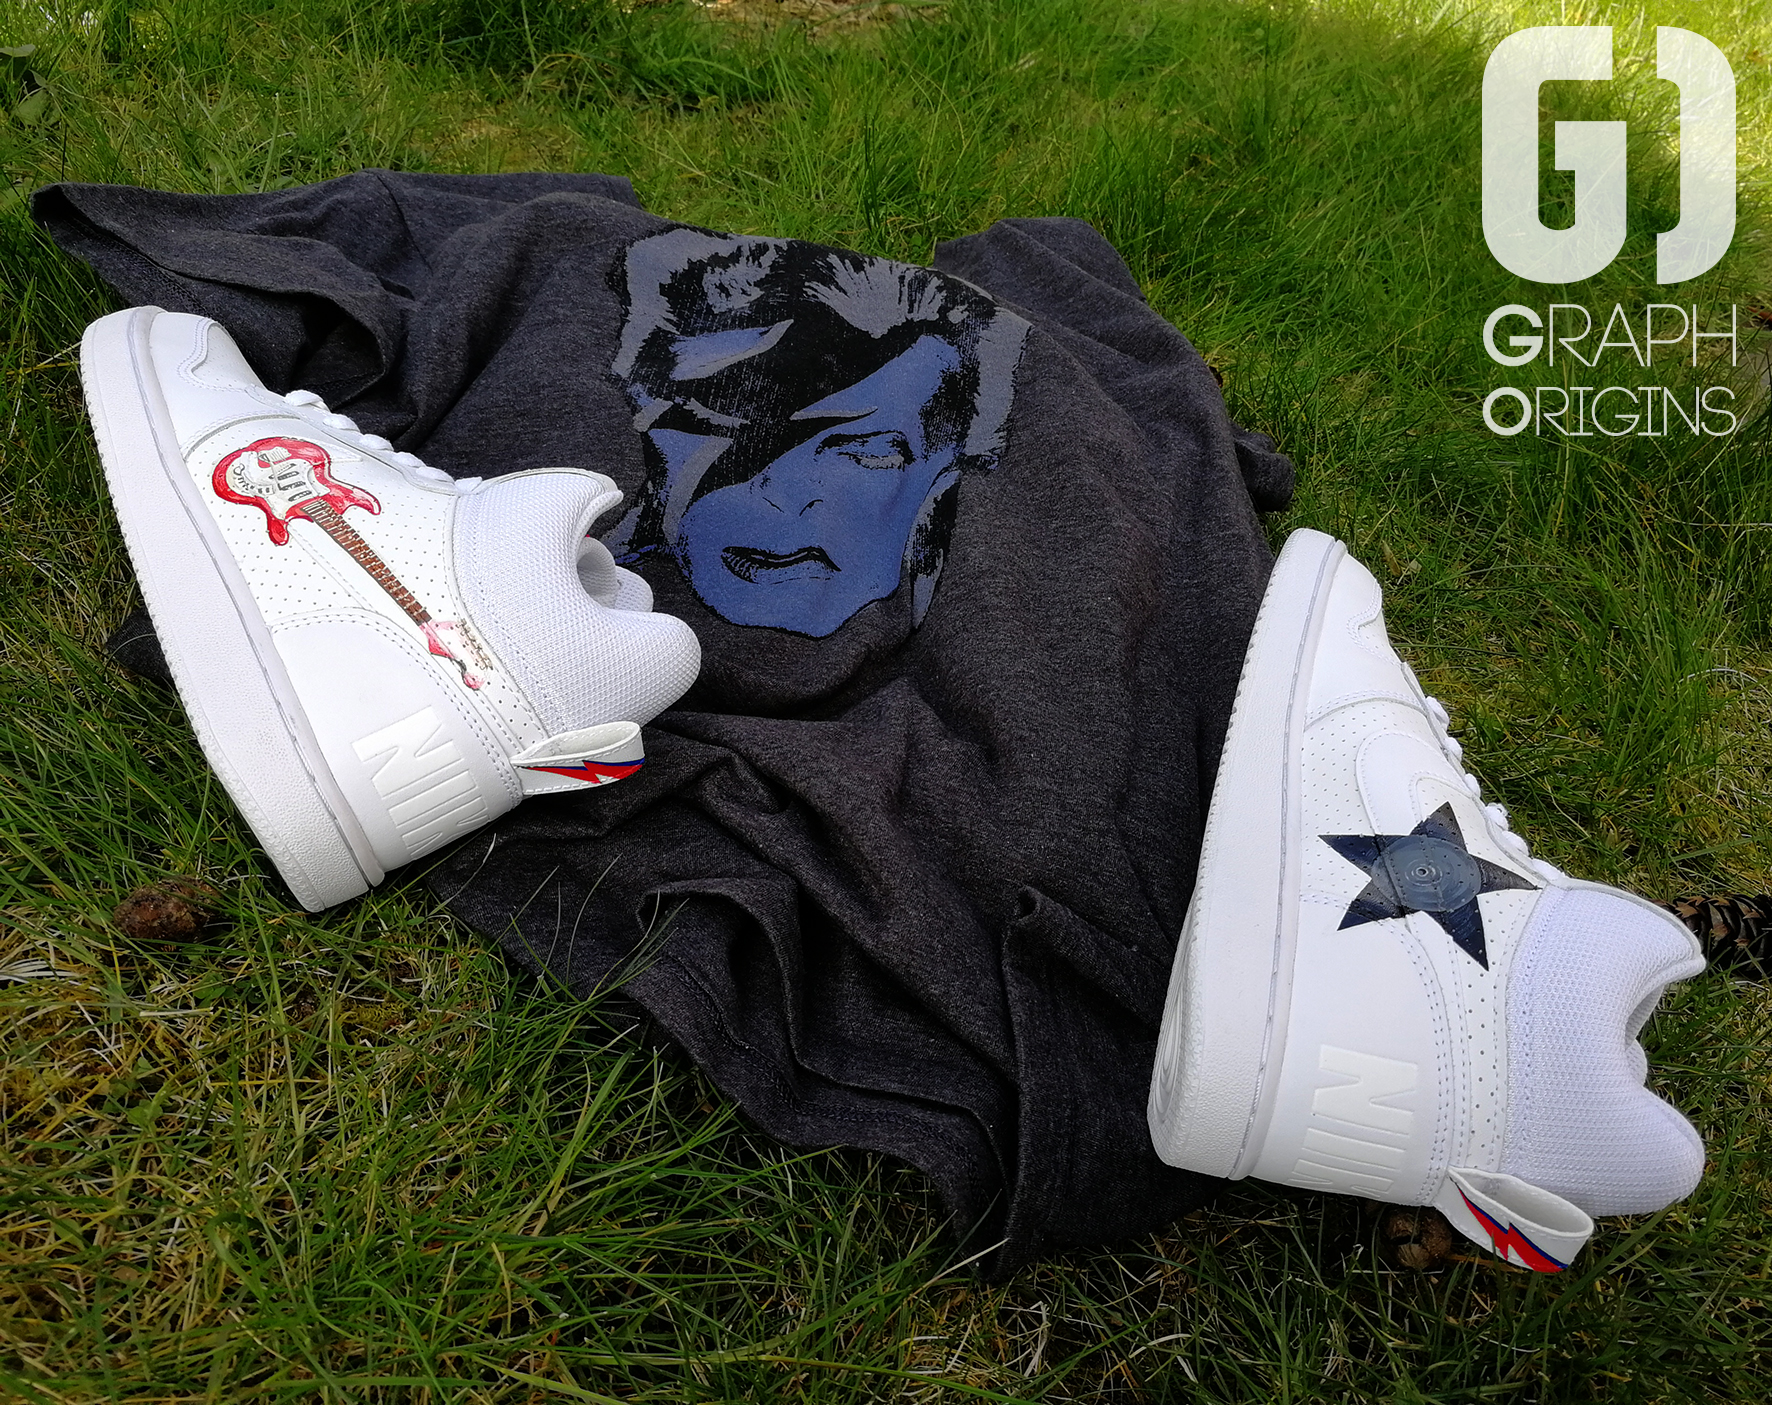 Custom David Bowie sur Nike Court Borough mid Graph Origins 2